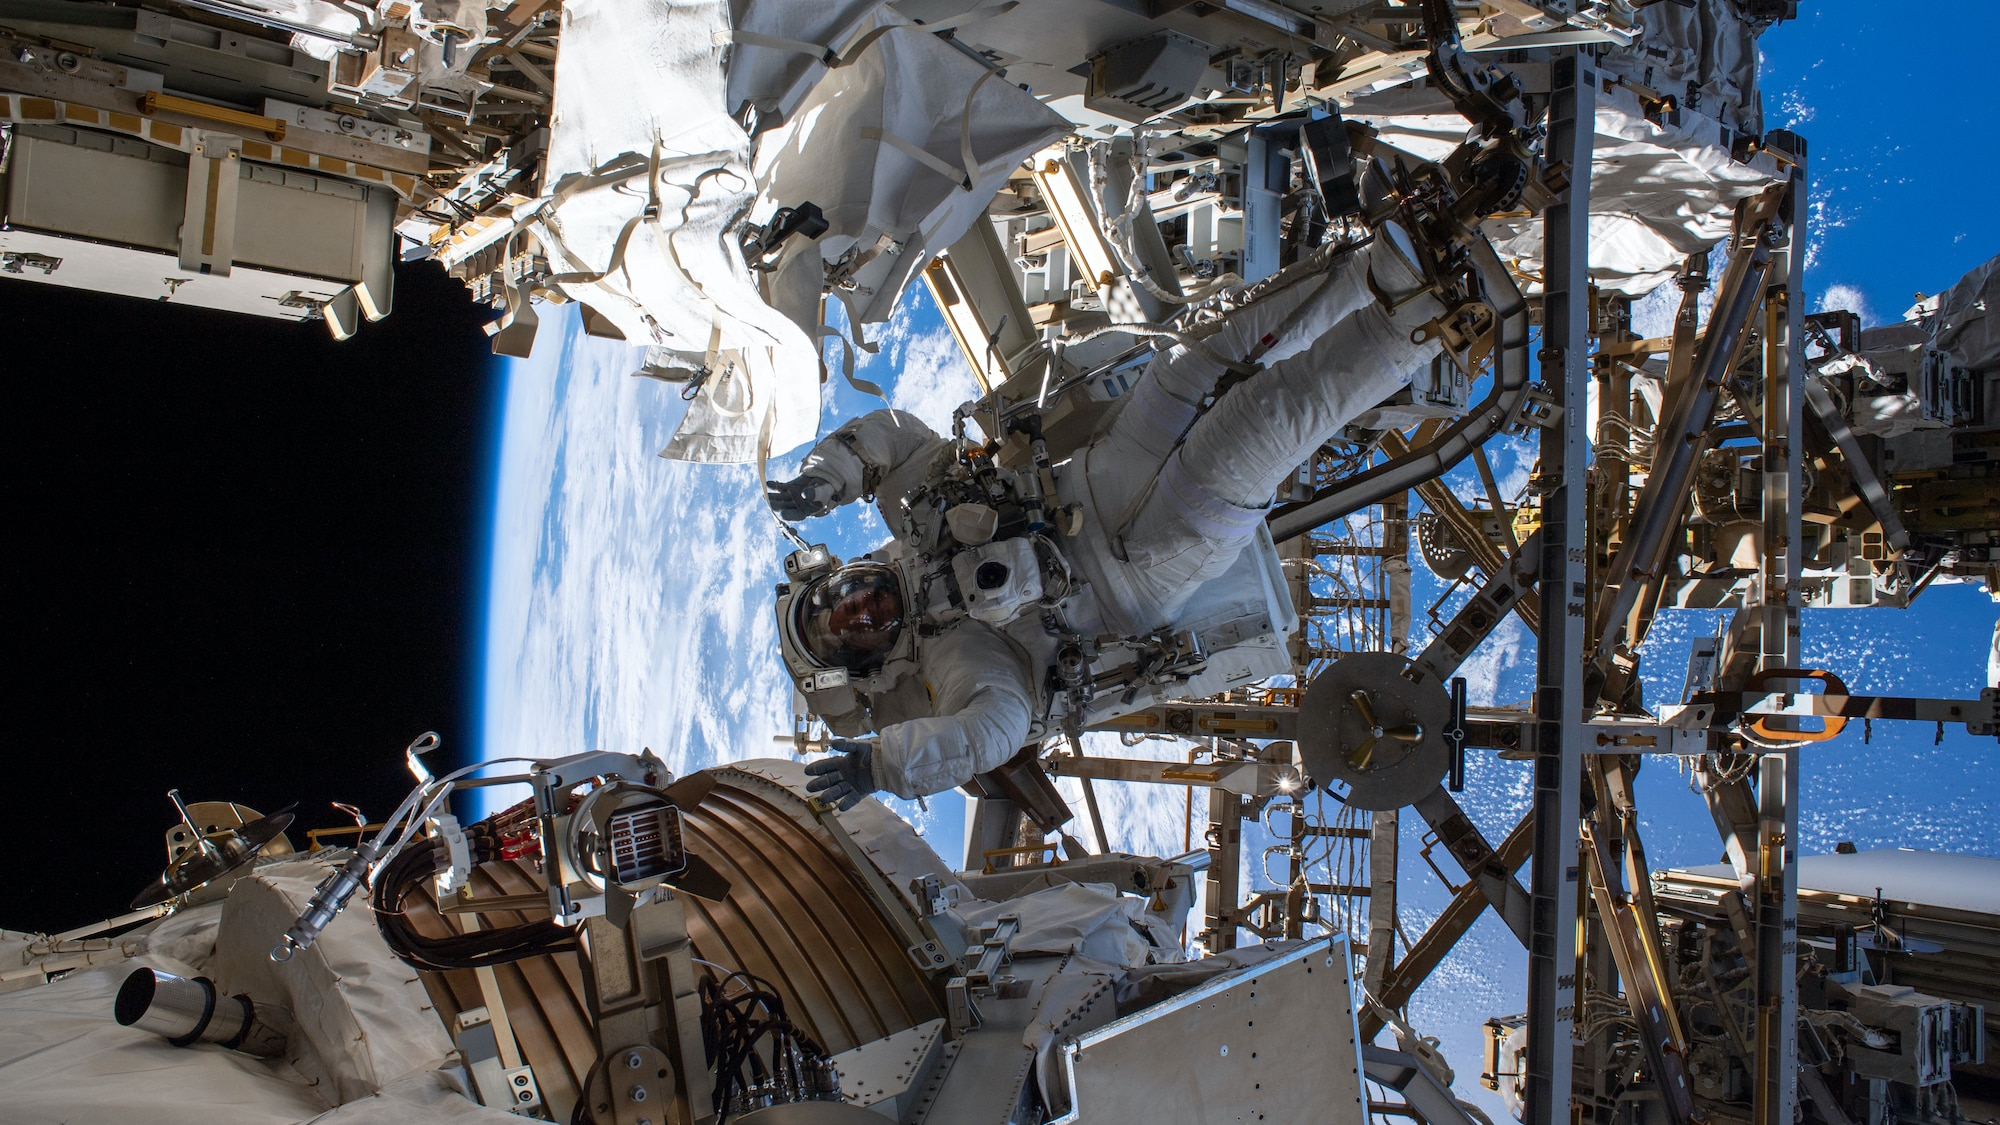 AMONG THE STARS - (Nov. 15, 2019) - NASA astronaut Andrew Morgan waves as he is photographed seemingly camouflaged among the Alpha Magnetic Spectrometer (lower left) and other International Space Station hardware during the first spacewalk to repair the cosmic particle detector. (NASA) ANDREW MORGAN